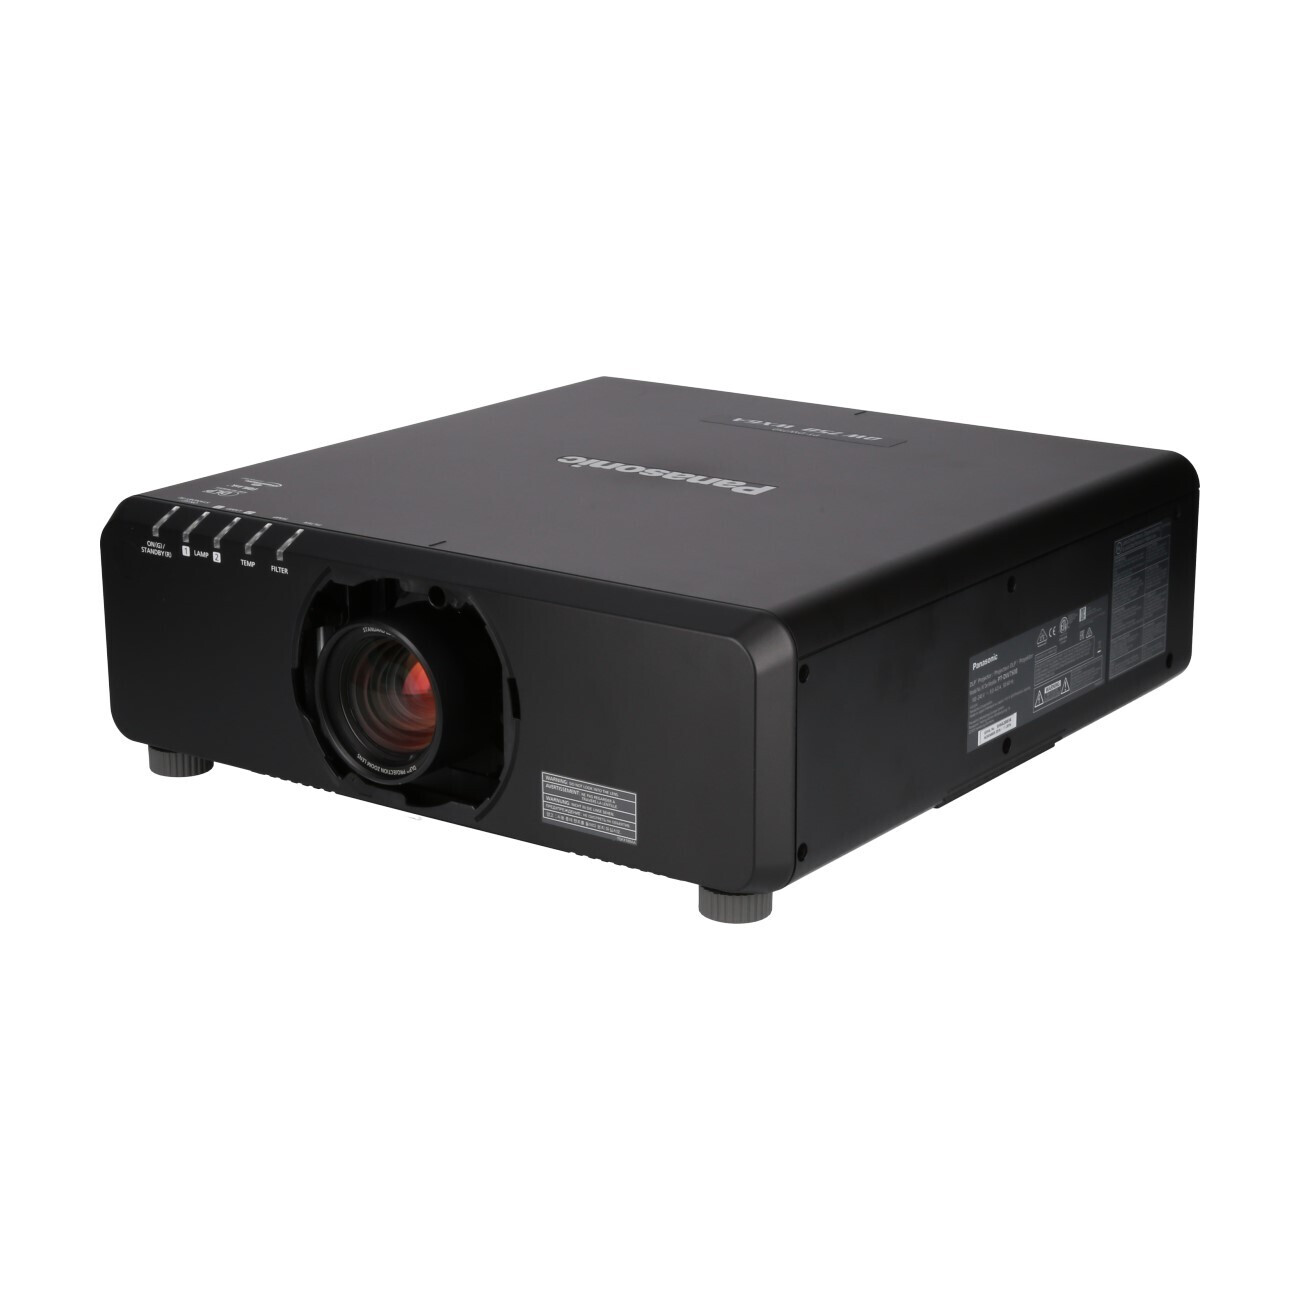 Panasonic PT-DW750LBE (without Lens)